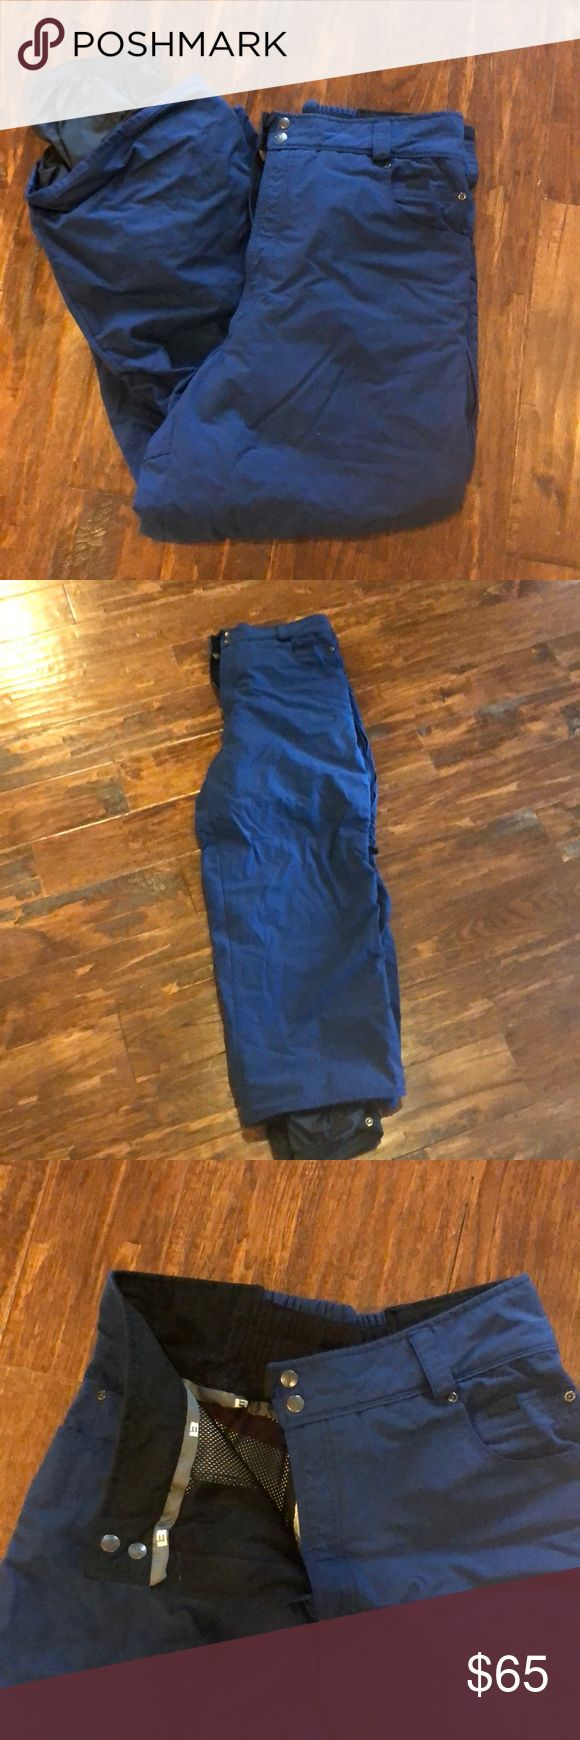 Burton Biolight Men's Snowboard Pant Biolight Pant in good condition! See photo for description specifics. These have been gently worn but have no apparent flaws. Originally retailed for around $140. Burton Jackets & Coats Ski & Snowboard